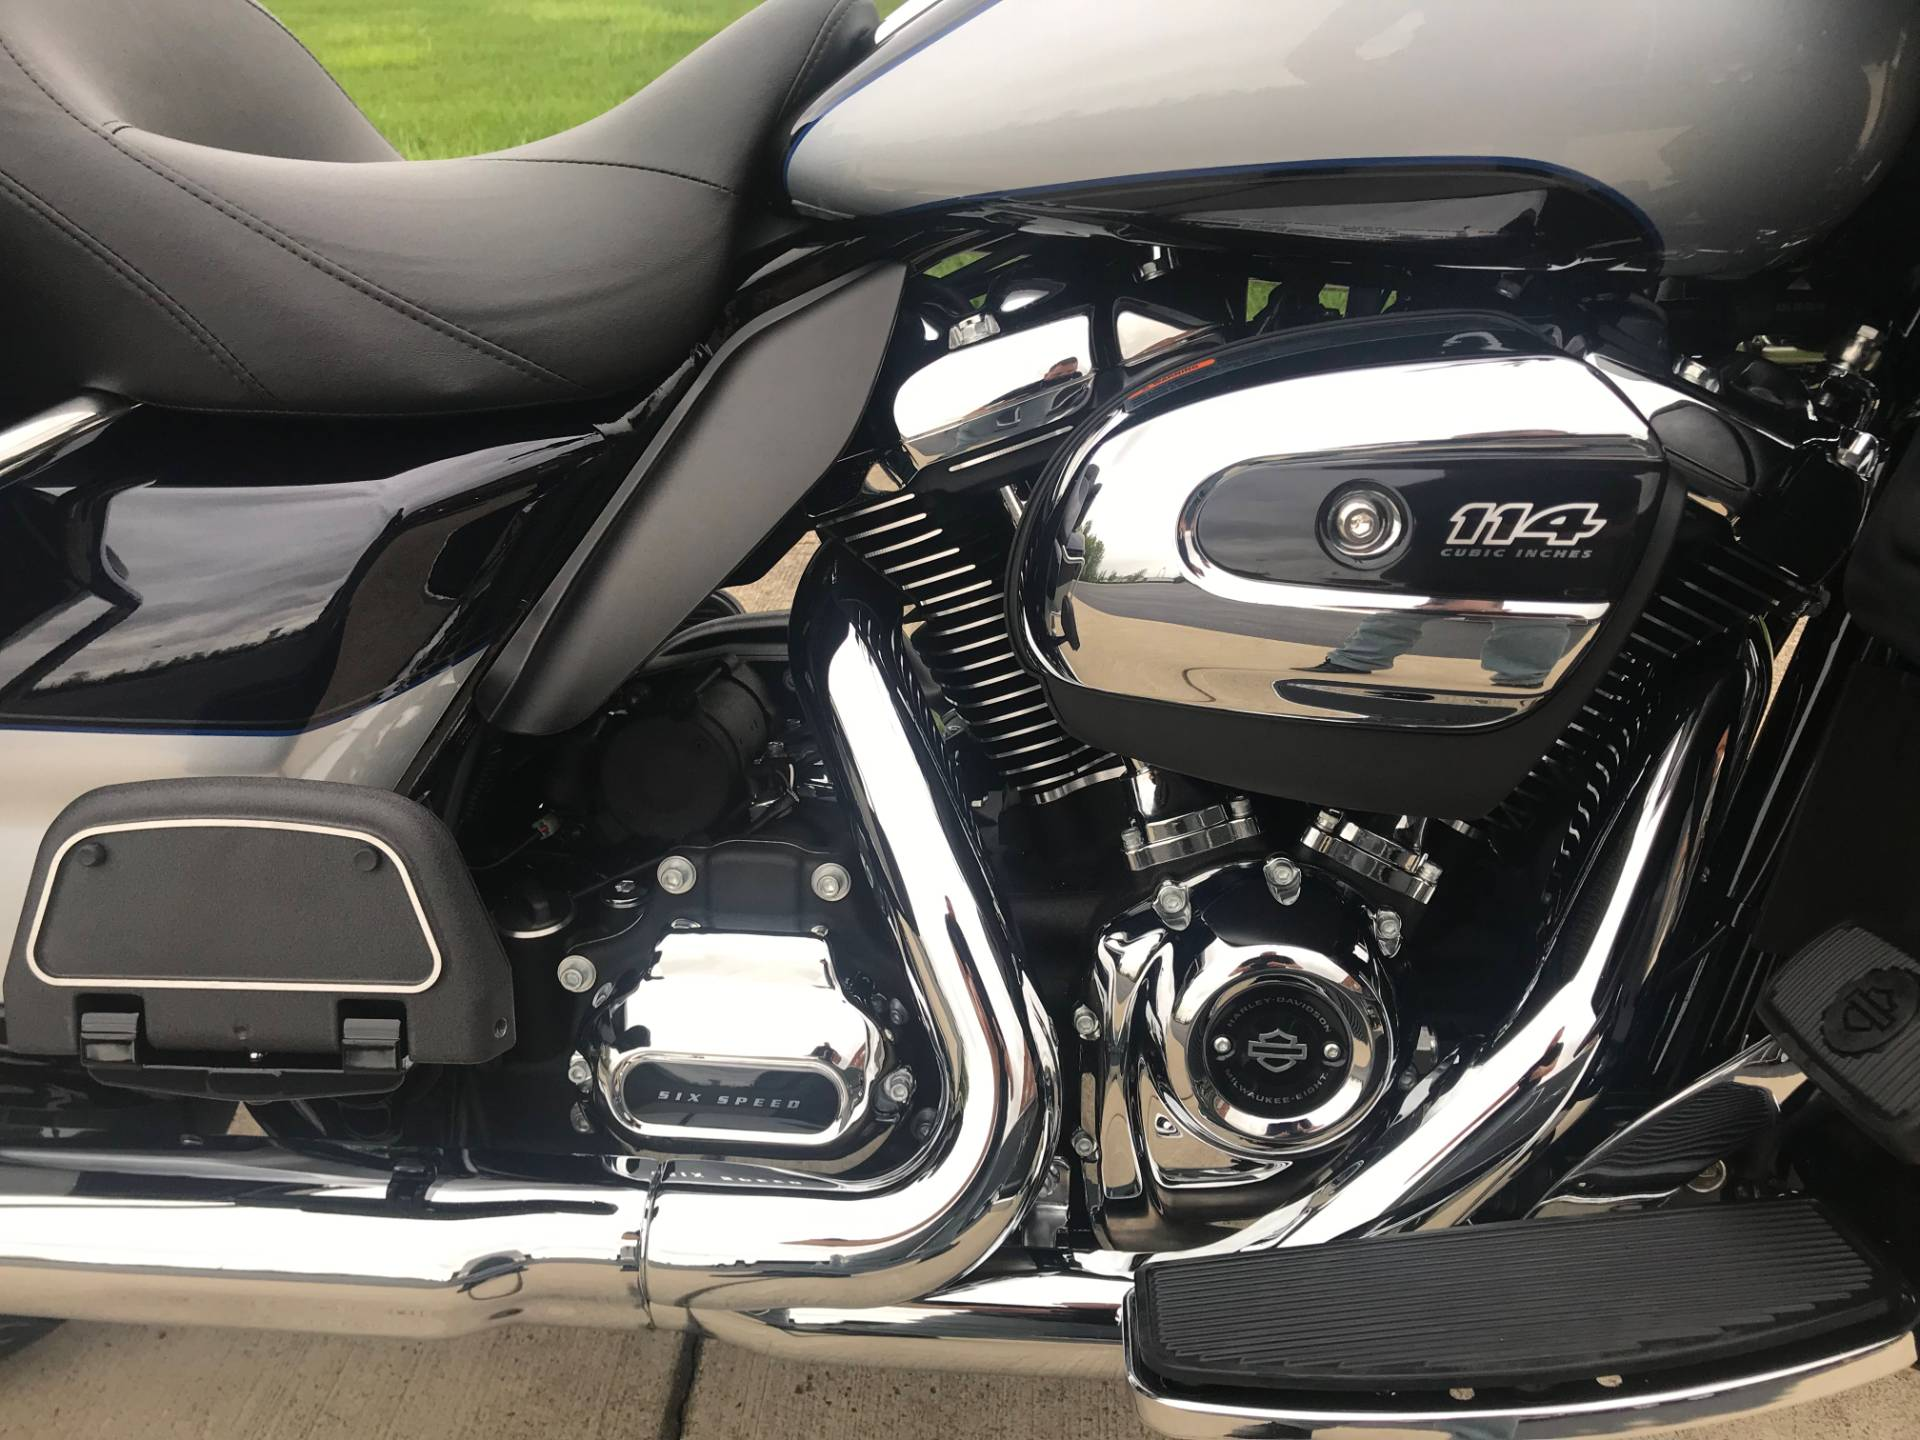 2019 Harley-Davidson Road Glide Ultra in Sunbury, Ohio - Photo 18